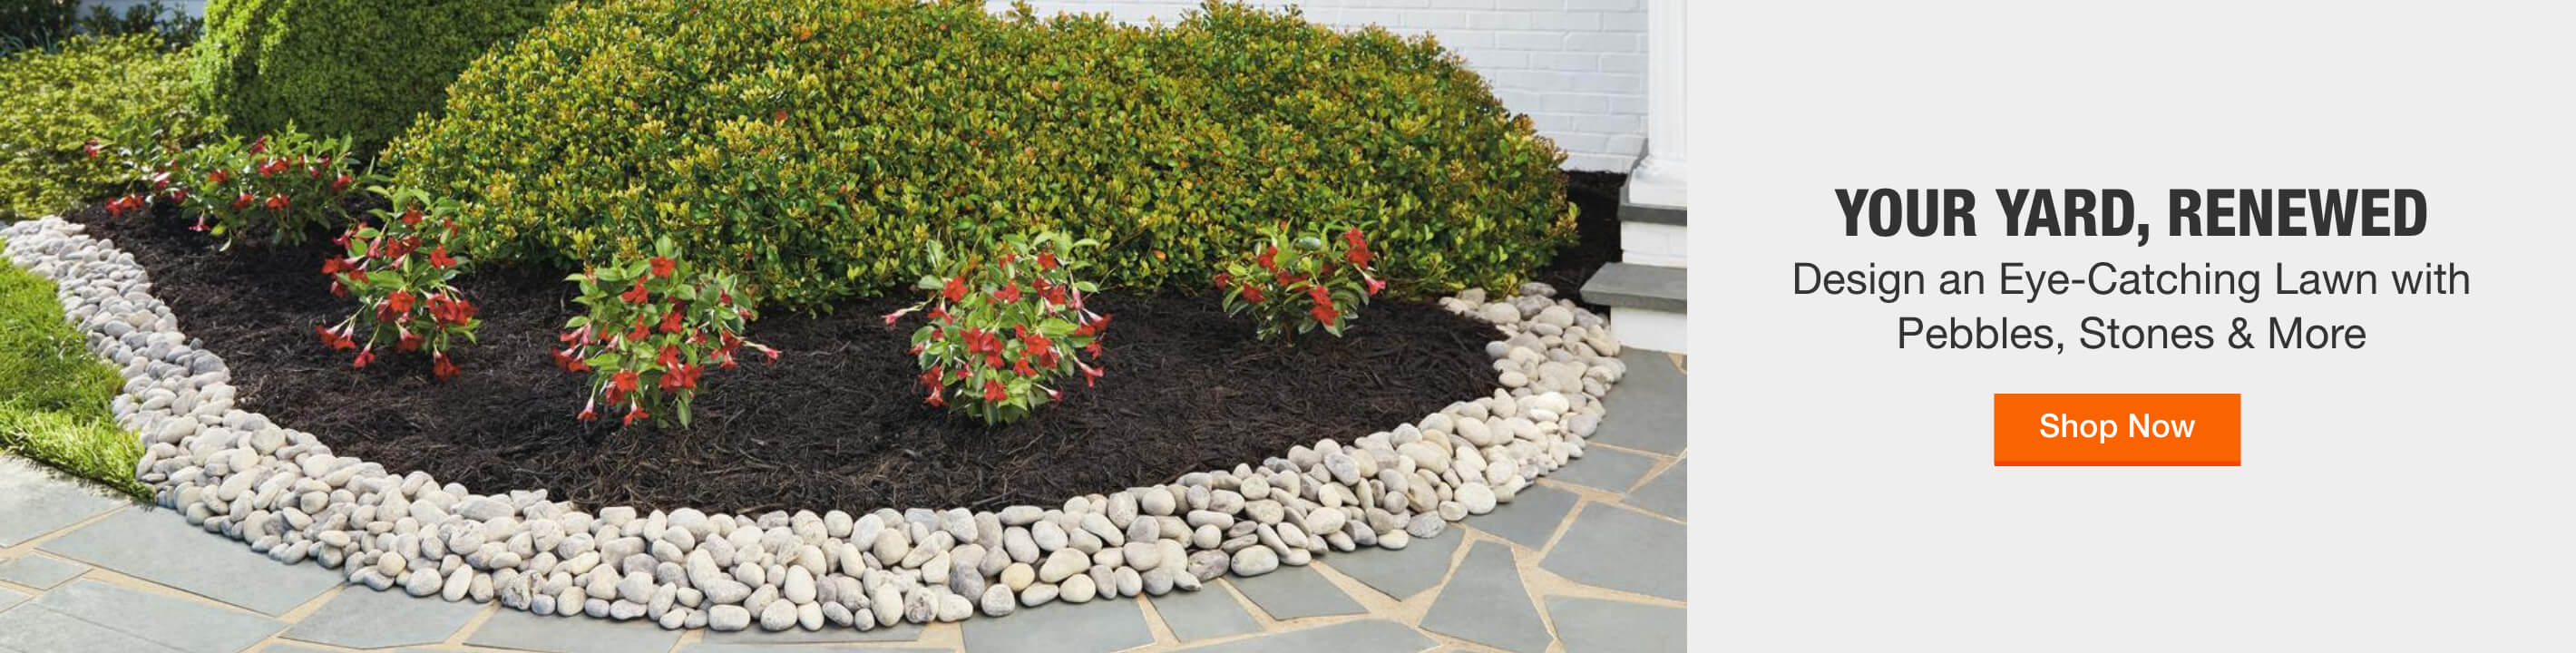 YOUR YARD, RENEWED Design an Eye-Catching Lawn with Pebbles, Stones & More Shop Now